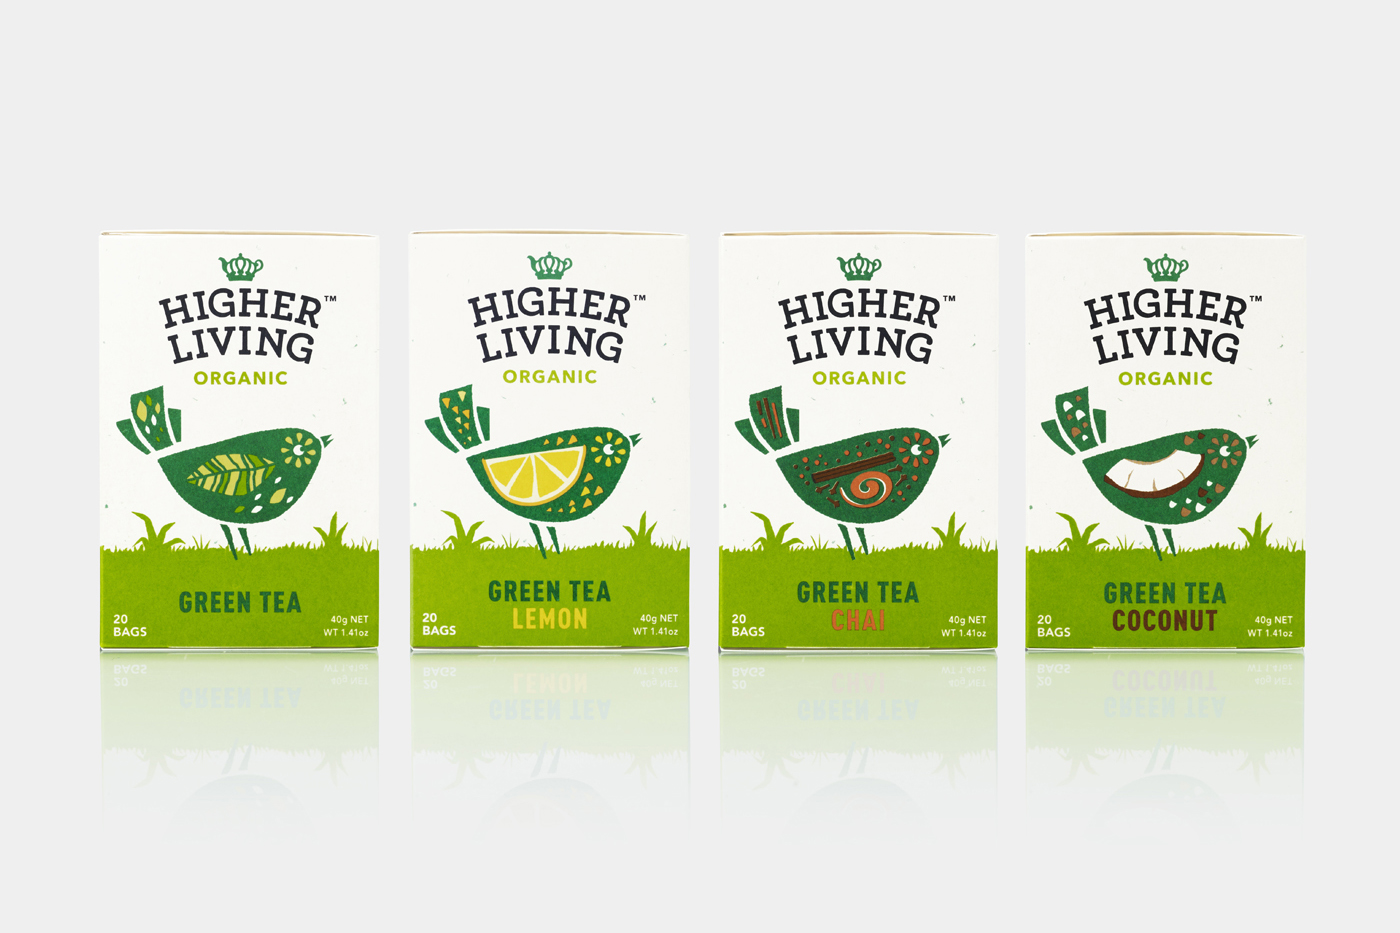 Branding and packaging for organic tea company Higher Living by B&B Studio, United Kingdom